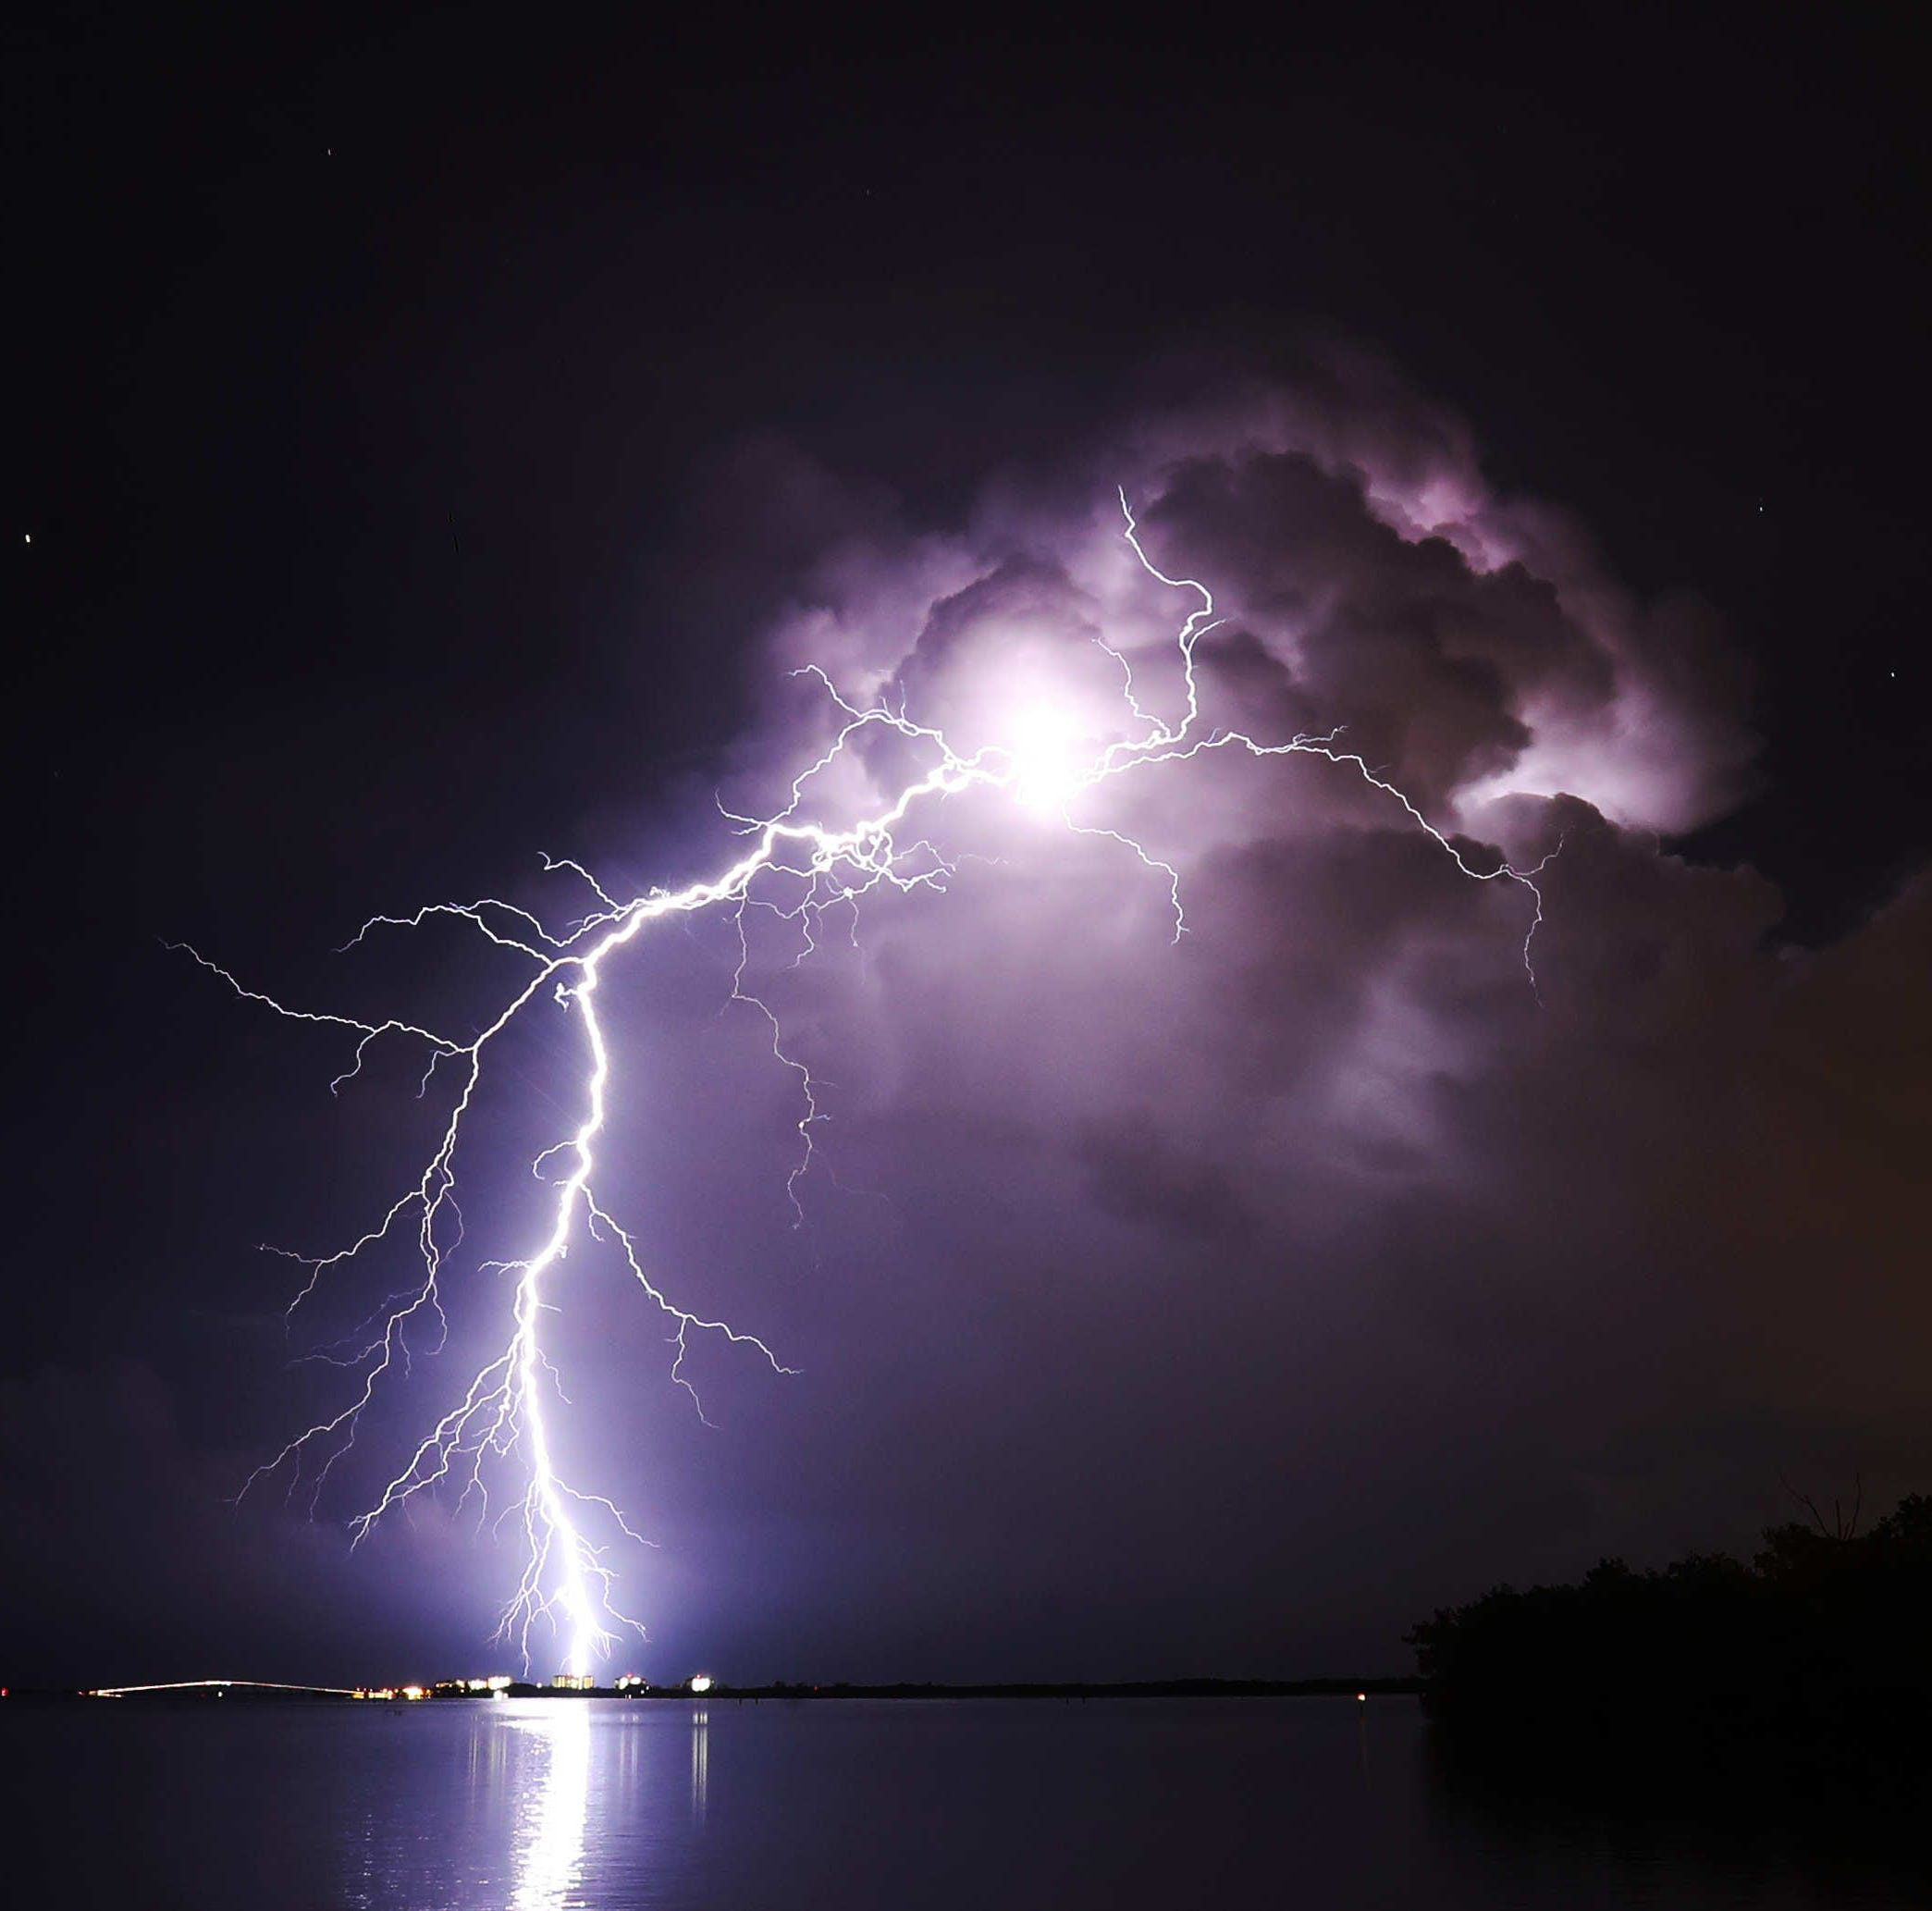 A bolt of lightning strikes near the Sanibel Causeway on Friday 8/10/2018. Photographed using a Canon 1DX with a 1250 ISO at 30 sec at f/10. Shot from a safe distance with a wide angle lens.